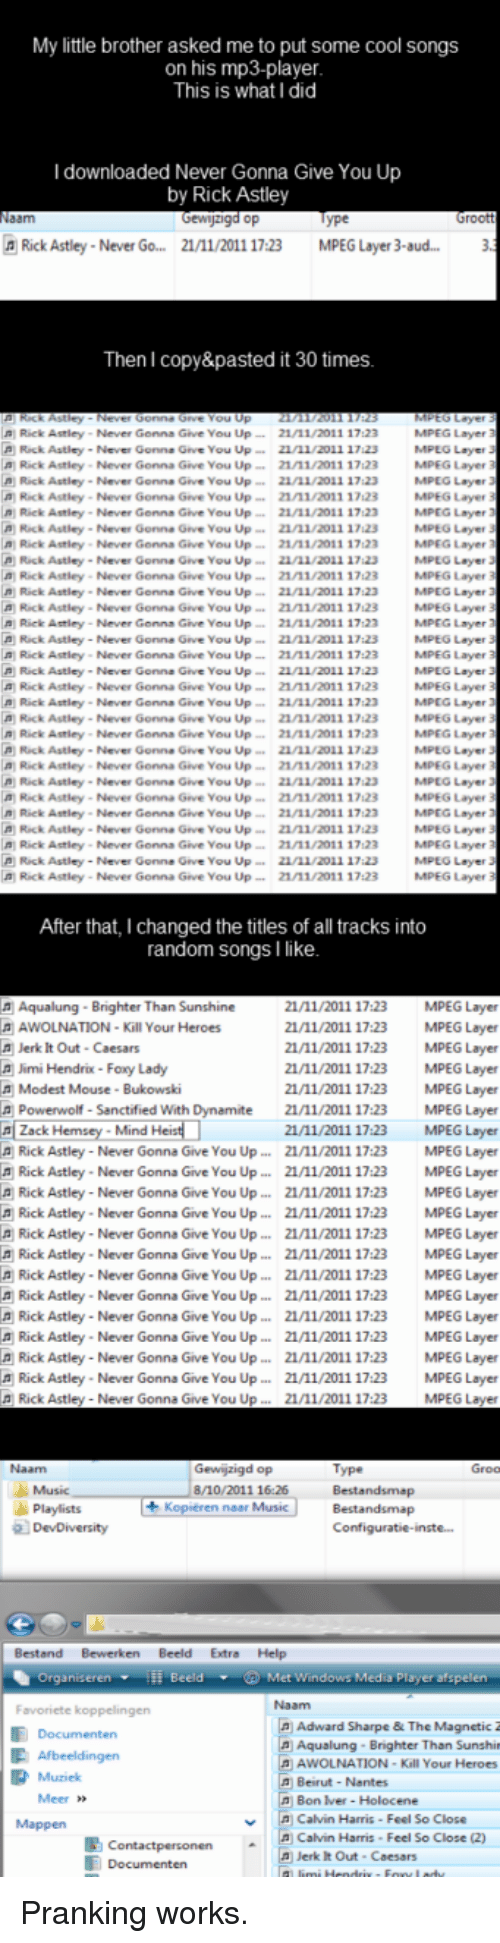 """Cool, Help, and Heroes: My little brother asked me to put some cool songs  on his mp3-player  This is what I did  I downloaded Never Gonna Give You Up  Gewijzigd op  Rick Astley-Never Go... 21/11/2011 17:23  MPEG Layer 3-aud...3  Then I copy&pasted it 30 times  Rick Astley- Never Gonna Give You Up21/11/2011 17:23  Rick Astley- Never Gonna Give You Up/11/2011 1723  MPEG Layer  MPLG Laye  a Rick Astley- Never Gonna Give You Up 1/11/2011 17123MPEG Layer  MPEG Layer  MPEG Layer  MPEG Layer  a Rick Astley-Never Gonne Give You Up21/11/2011 17123 MPEG Layer  MPEG Layer  ได้ Rick Astley . Neve, Genn. Geve vou up """". 21/11/2011 17:23 MPEG Layer  MPEG Layer  MPEG Layer  Rick Astley-Never Gonna Give You Up21/11/2011 17123 MPEG Layer  MPEG Layer  MPEG Layer  MPEG Layer  MPEG Layer  Rick Astley . Never Gonna Geve vou up 21Λ1/2011 17:23 MAPEG Layer  MPEG Layer  MPEG Layer  MPEG Layer  MPLO Layer  a Rick Astley Never Gonna Give You Up 1/11/2013 17123MPEG Layer  Rick Astley- Never Gonna Give You Up211/2o1 17123MPEG Layer  MPEG Layer  MPEG Layer  MPEG Layer  MPEG Layer  Rick Astley- Never Gonne Give You Upni/z011 1723 MPEG Layer  MPEG Layer  Rick Astley-Never Gonna Give You Up21/11/2011 17:23  Rick Astley- Never Gonna Give You Up 1/11/2011 17:23  n Rick Astley- Never Genna Give You Up21/11/2011 17 23  A Rick Astley Never Gonna Give You Up21/11/2011 17123  Rick Astley- Never Gonna Give You Up21/11/2011 17123  Rick Astley- Never Genna Give You Up21/11/2011 17 23  A Rick Astley-Never Gonna Give You Up21/11/2011 17:23  Rick Astley-Never Gonne Give You Up221/2011 17:23  Rick Astley - Never Gonna Give You Up21/11/2011 17:23  Rick Astley . Never Gonna Give You UP-. 21/11/2011 17:23  Rick Astley-Never Gonna Give You Up21/11/2011 17:23  Rick Astley-Never Gonna Give You Up 211/2011 17:23  n Rick Astley- Never Genna Give You Up21/11/2011 17123  Ιβ) Rack Astley-Never Gonne Geve vou up """". 21/11/2011 17123  Rick Astley- Never Genna Give You Up 1/11/2011 17123  n Riek Astley- Never Genns Give You U"""